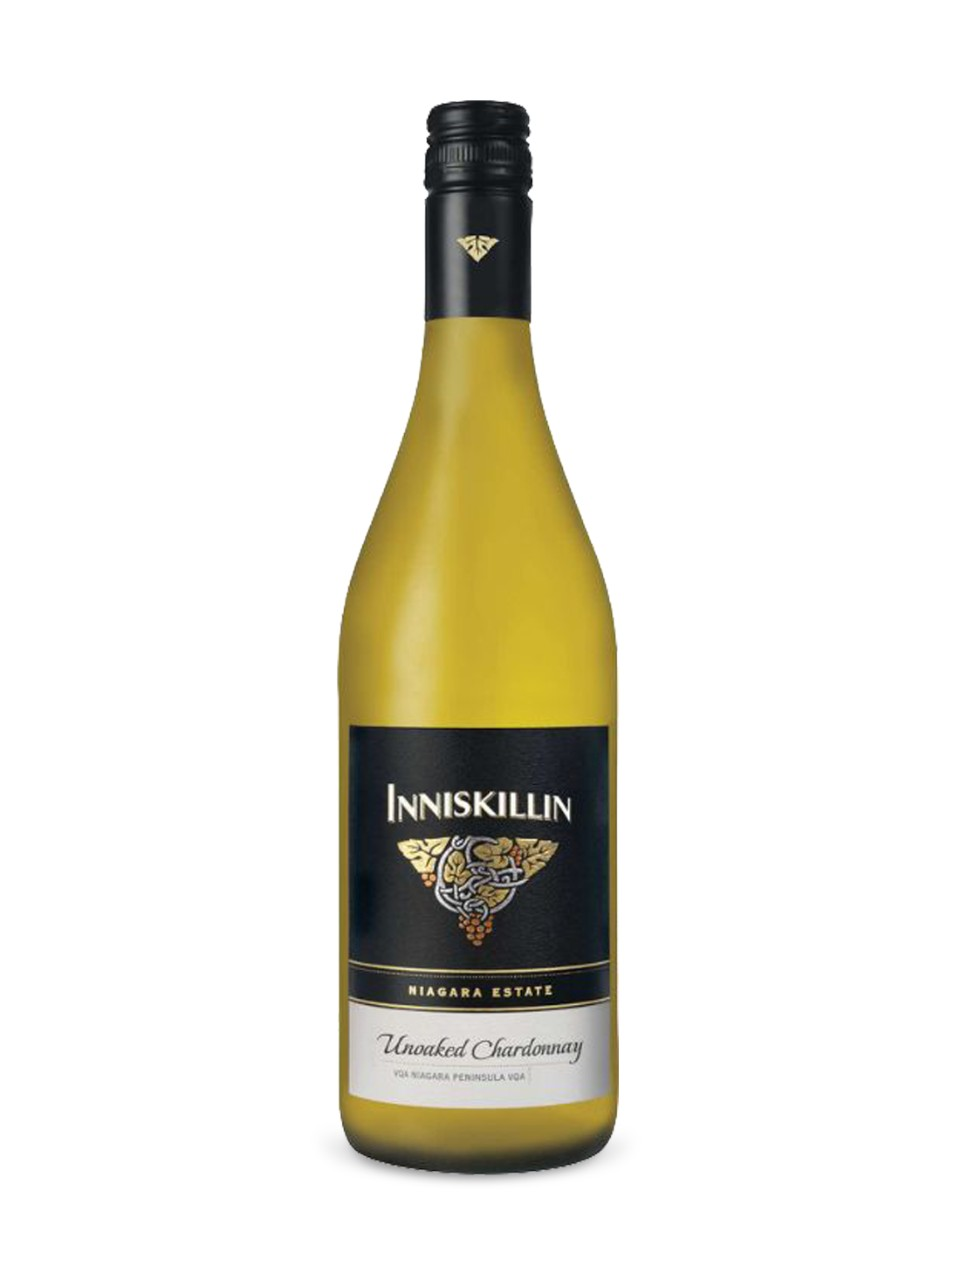 Image for Inniskillin Unoaked Chardonnay VQA from LCBO